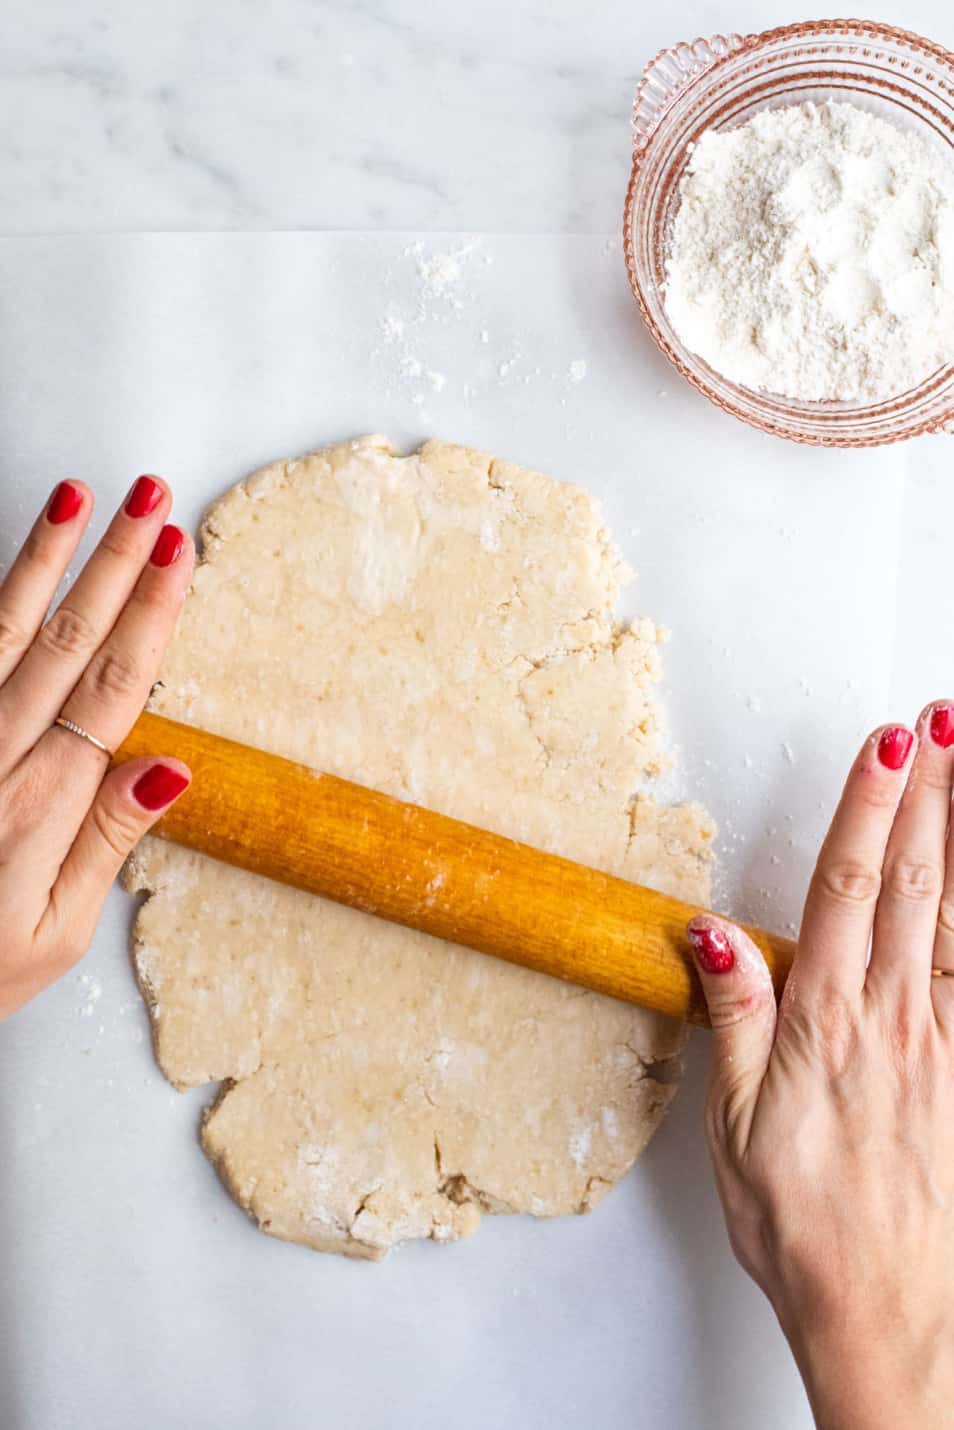 Woman's hands rolling out tart dough